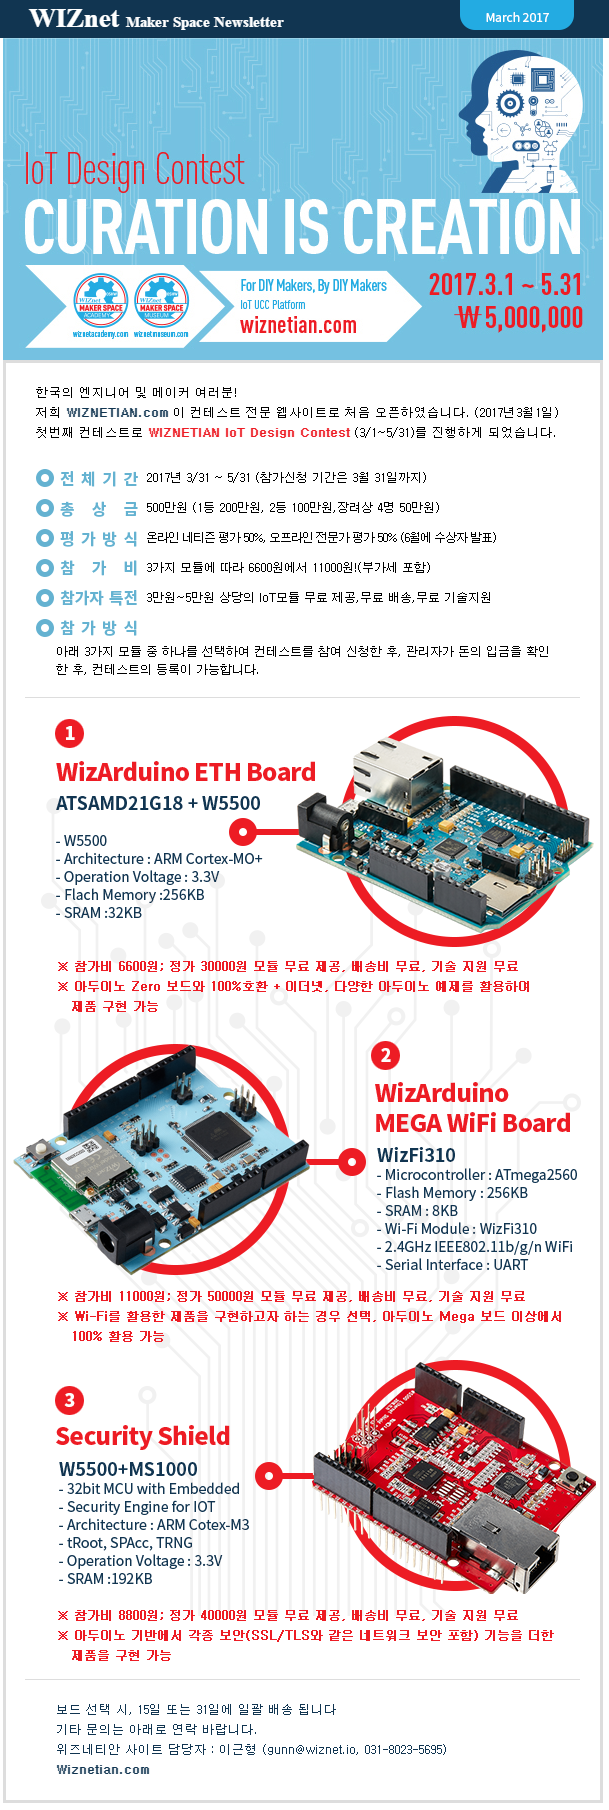 WIZnet IoT Design Contest 위즈네트 IoT 공모전